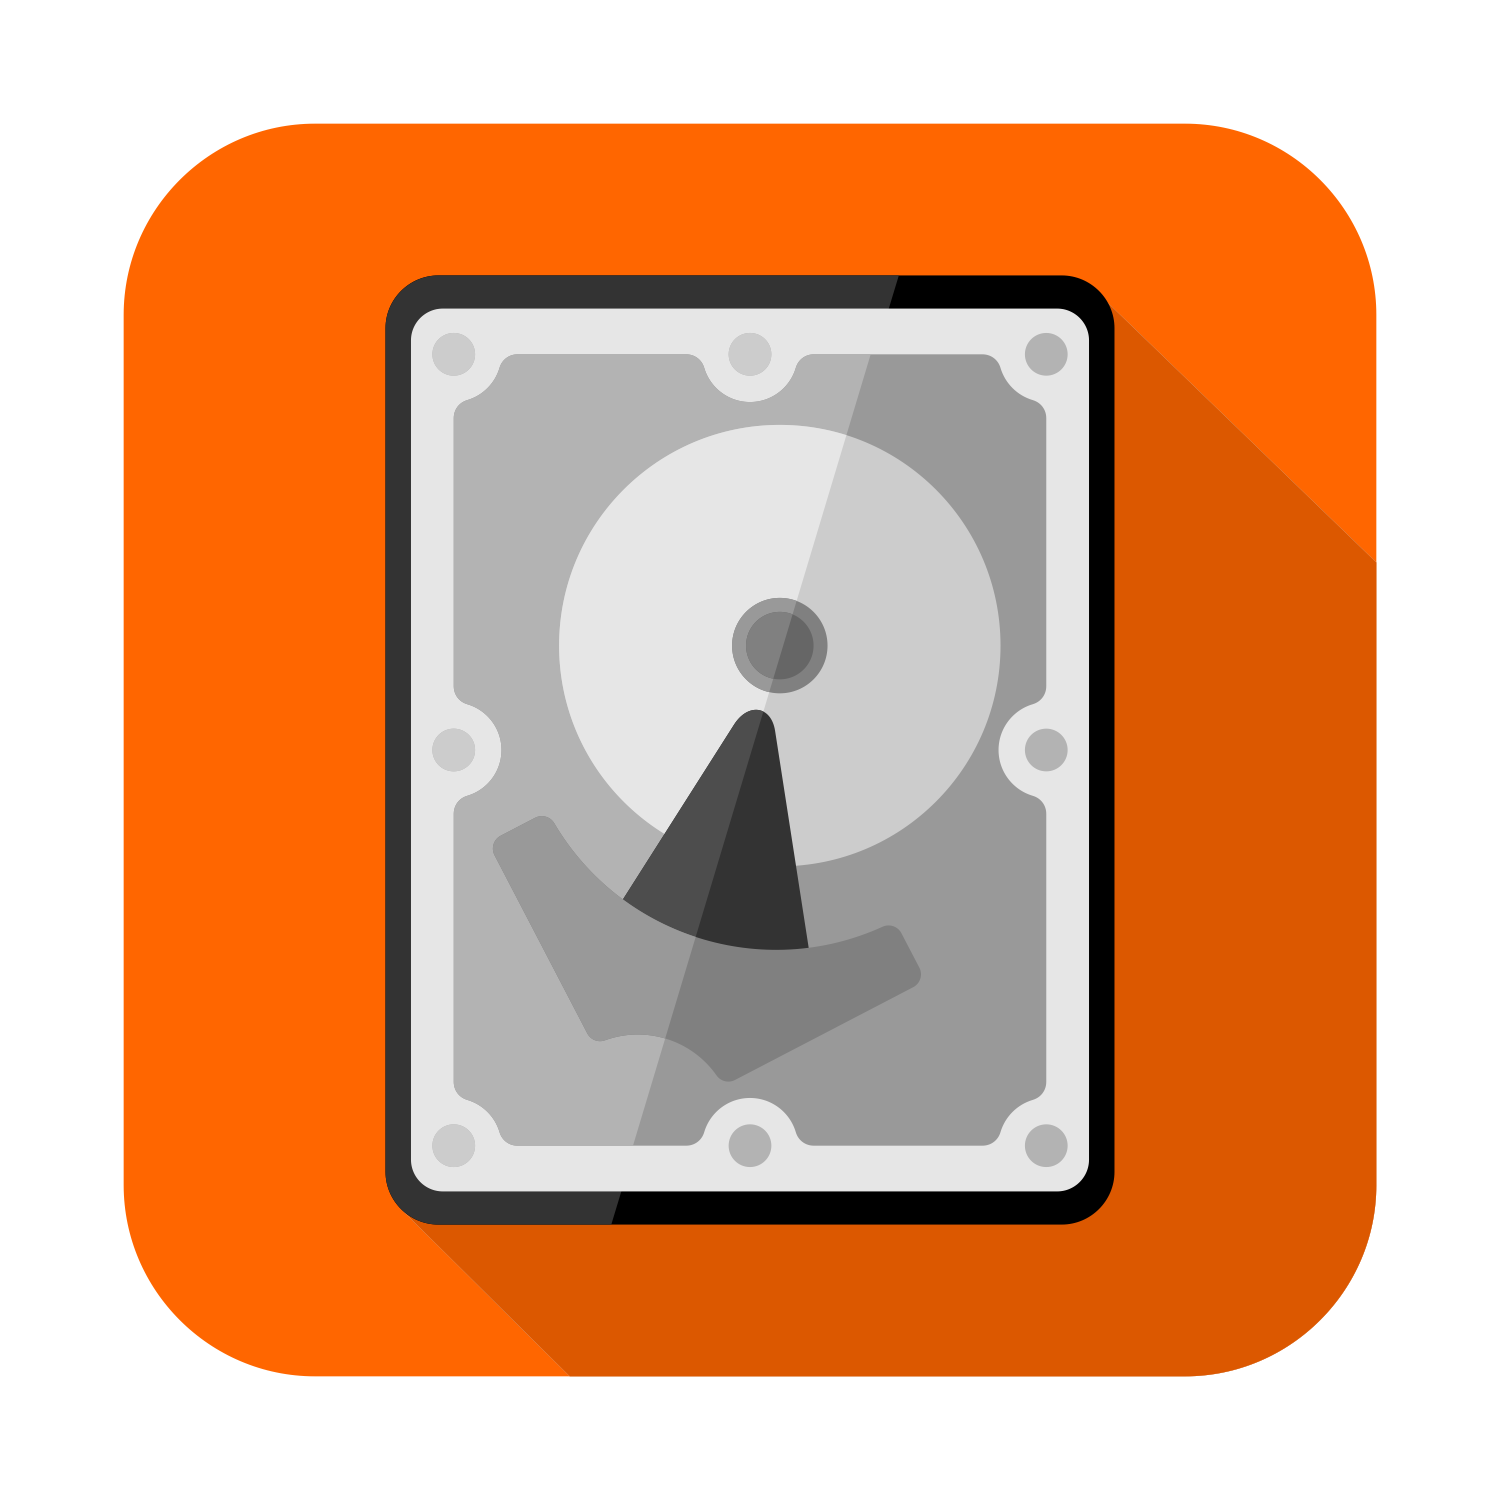 HDD vector icon